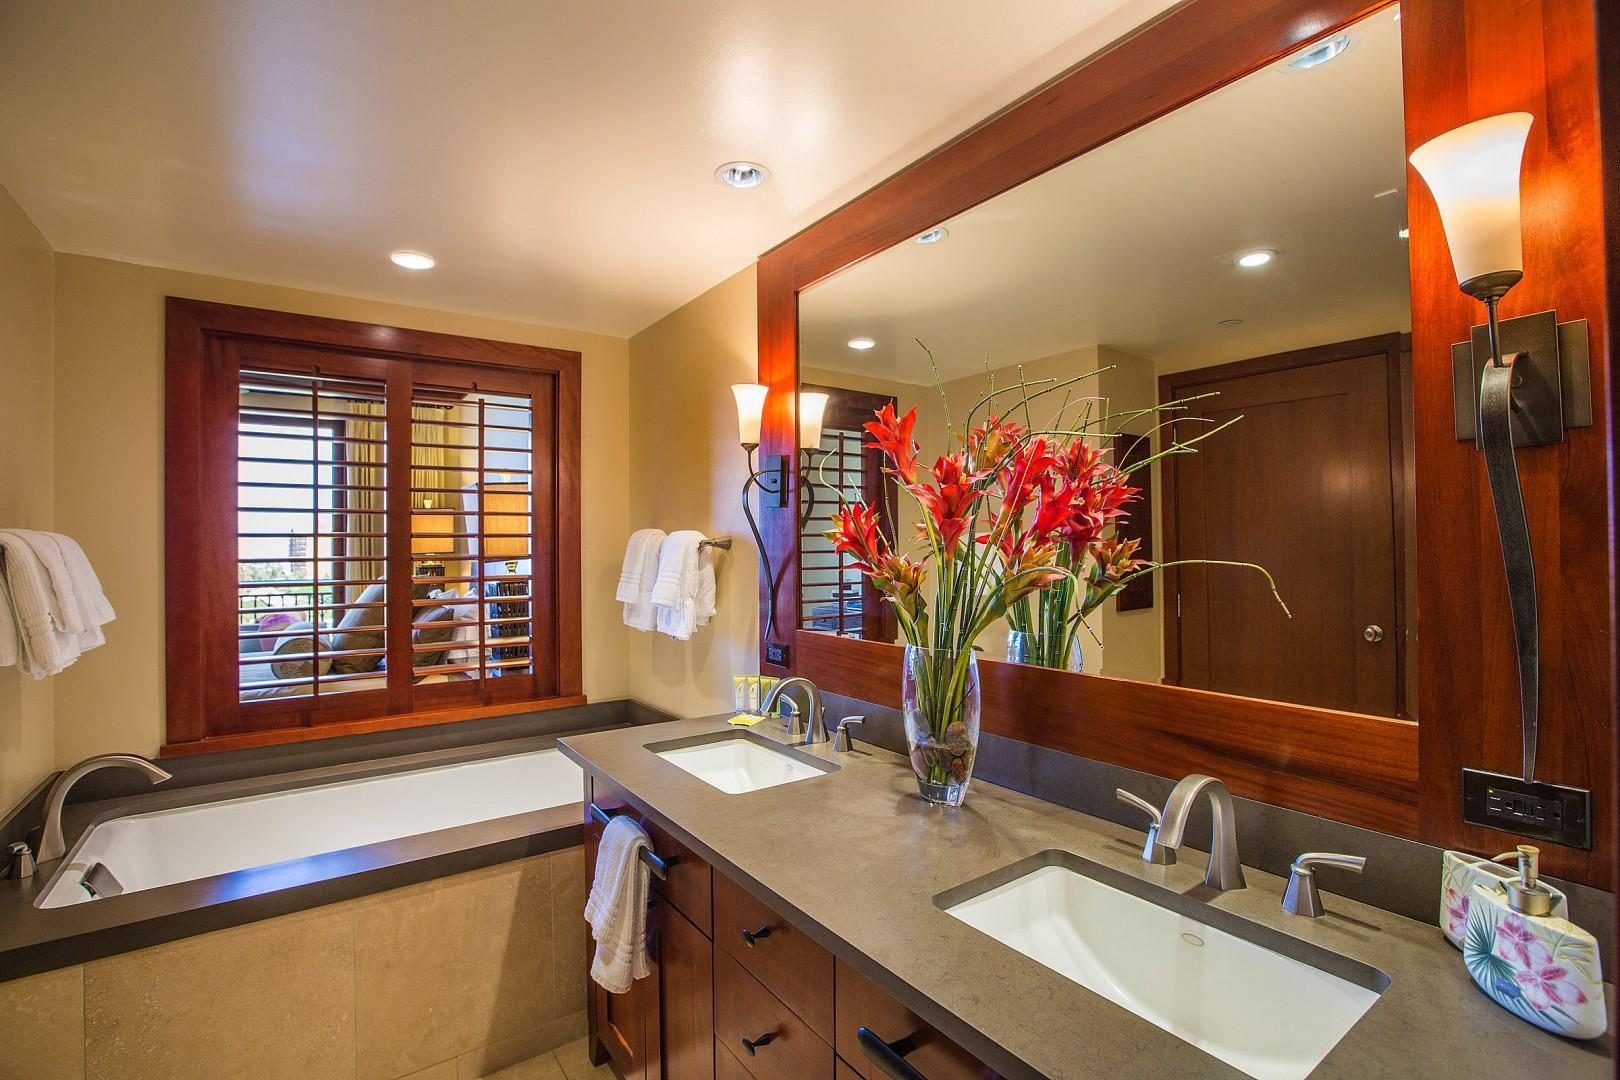 Master bathroom with soaking tub, double sinks and separate shower